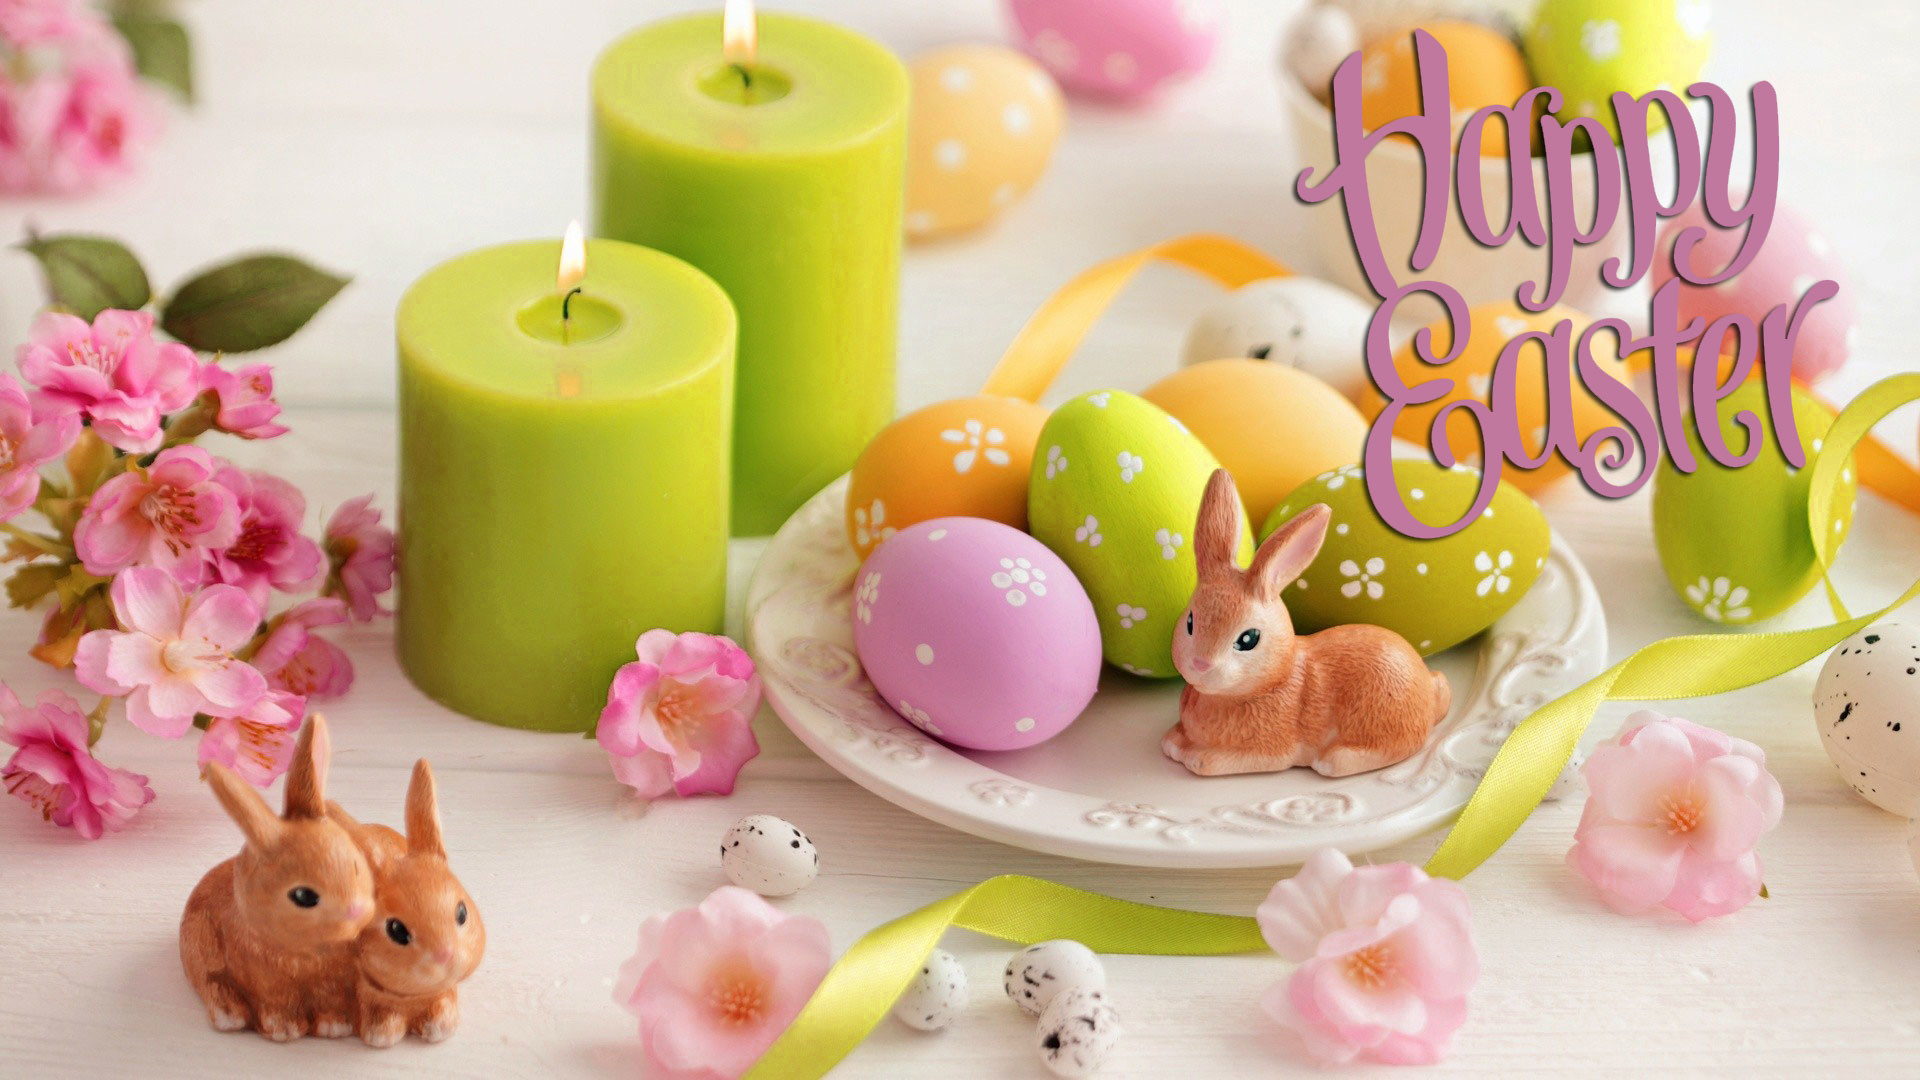 Cute Easter Wallpapers 74 Images